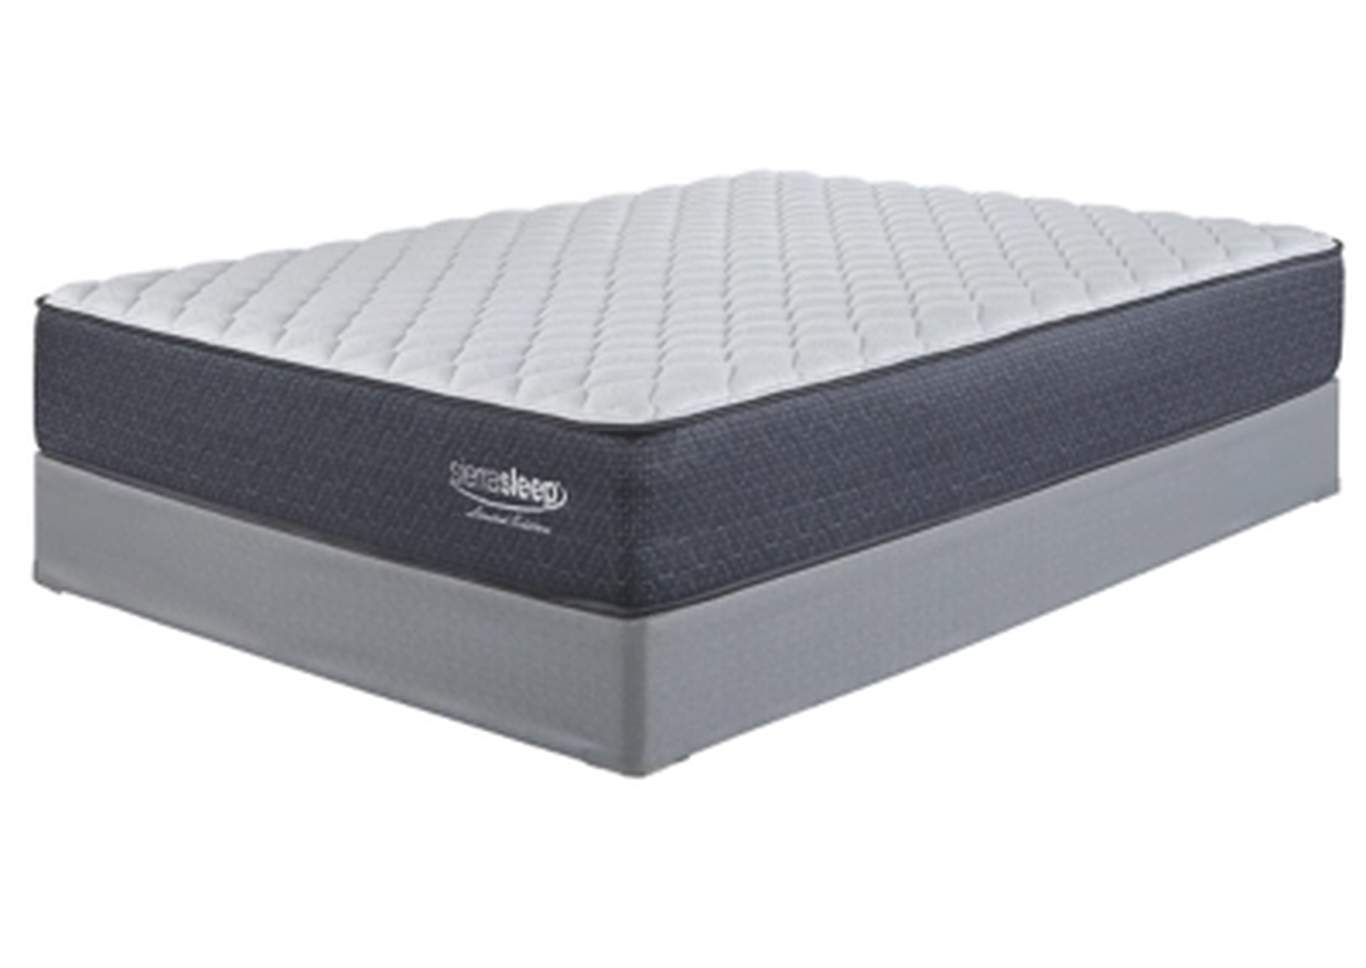 Limited Edition Firm White King Mattress,Sierra Sleep